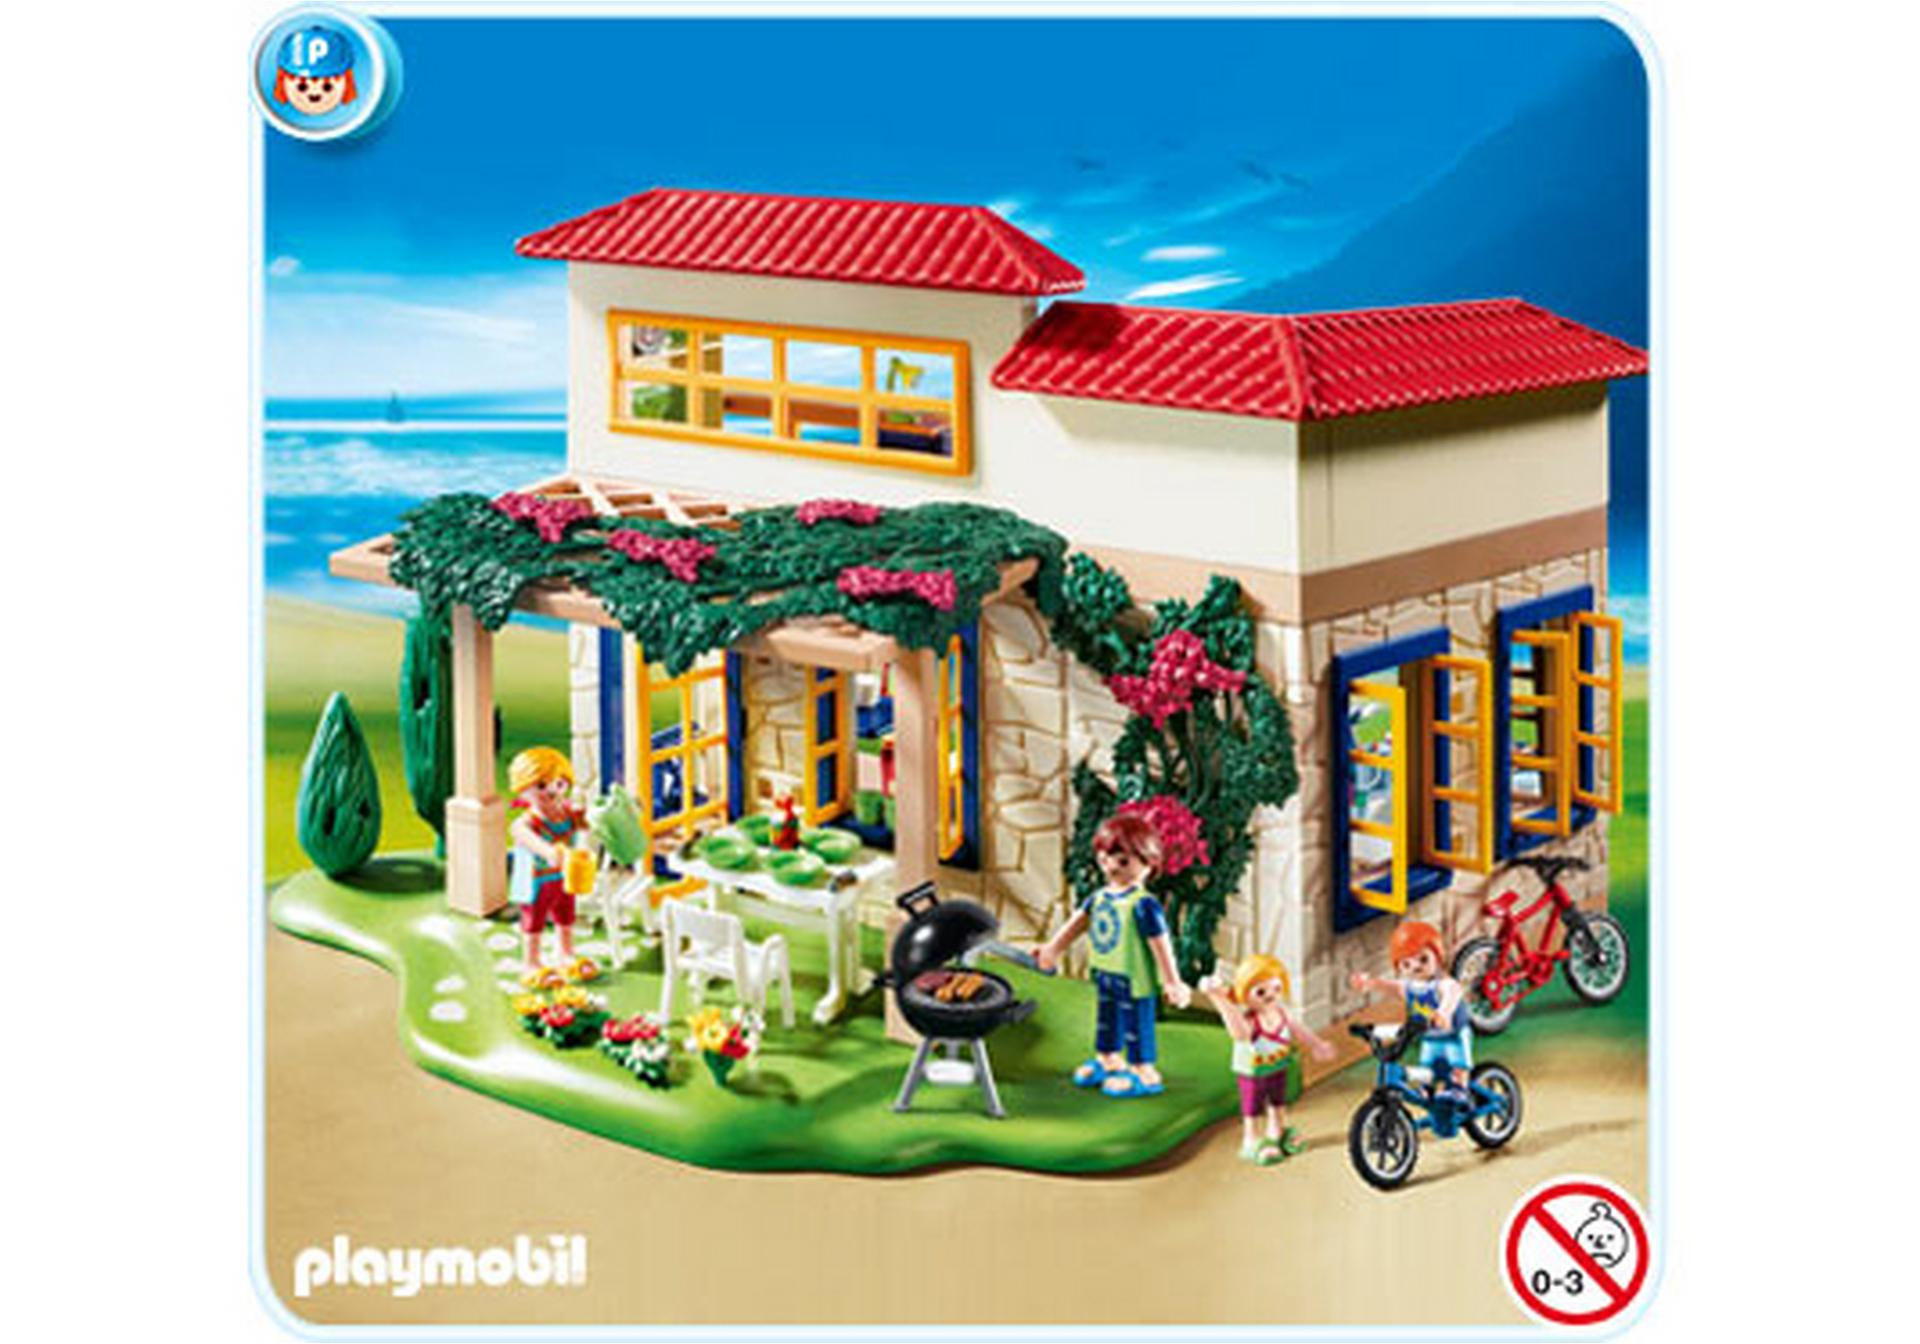 ferientraumhaus 4857 a playmobil deutschland. Black Bedroom Furniture Sets. Home Design Ideas